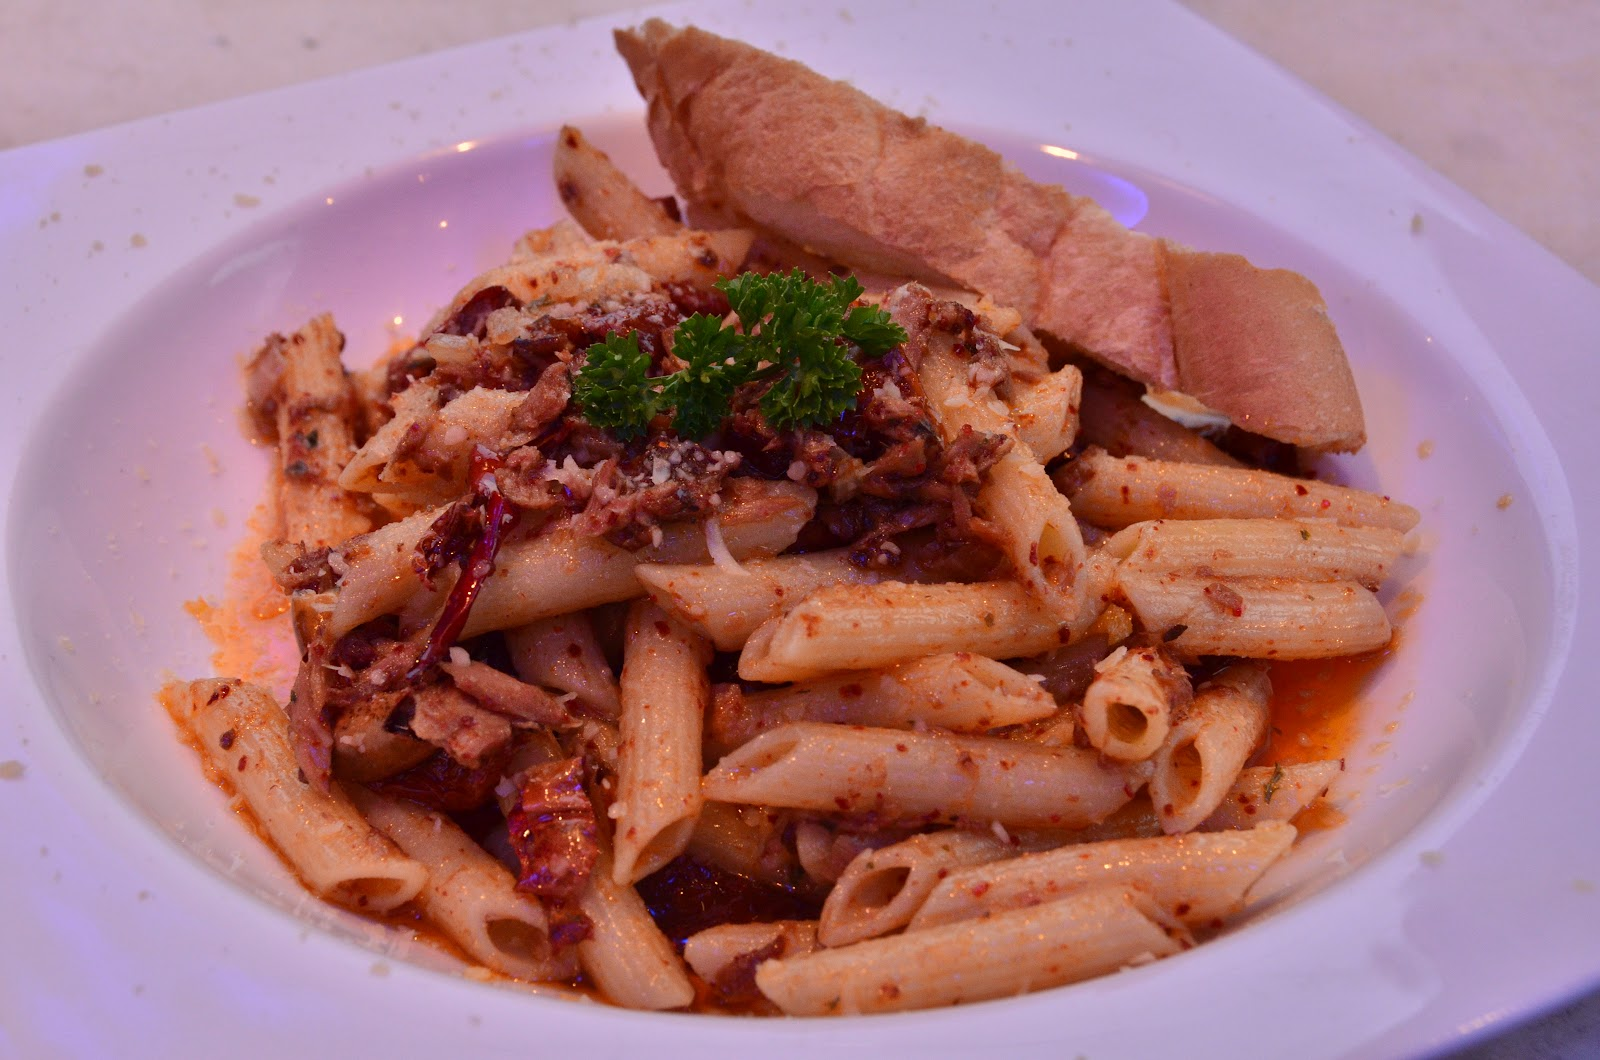 Spicy Tuna Penne - tuna in olive oil, sun dried tomatoes, black olives